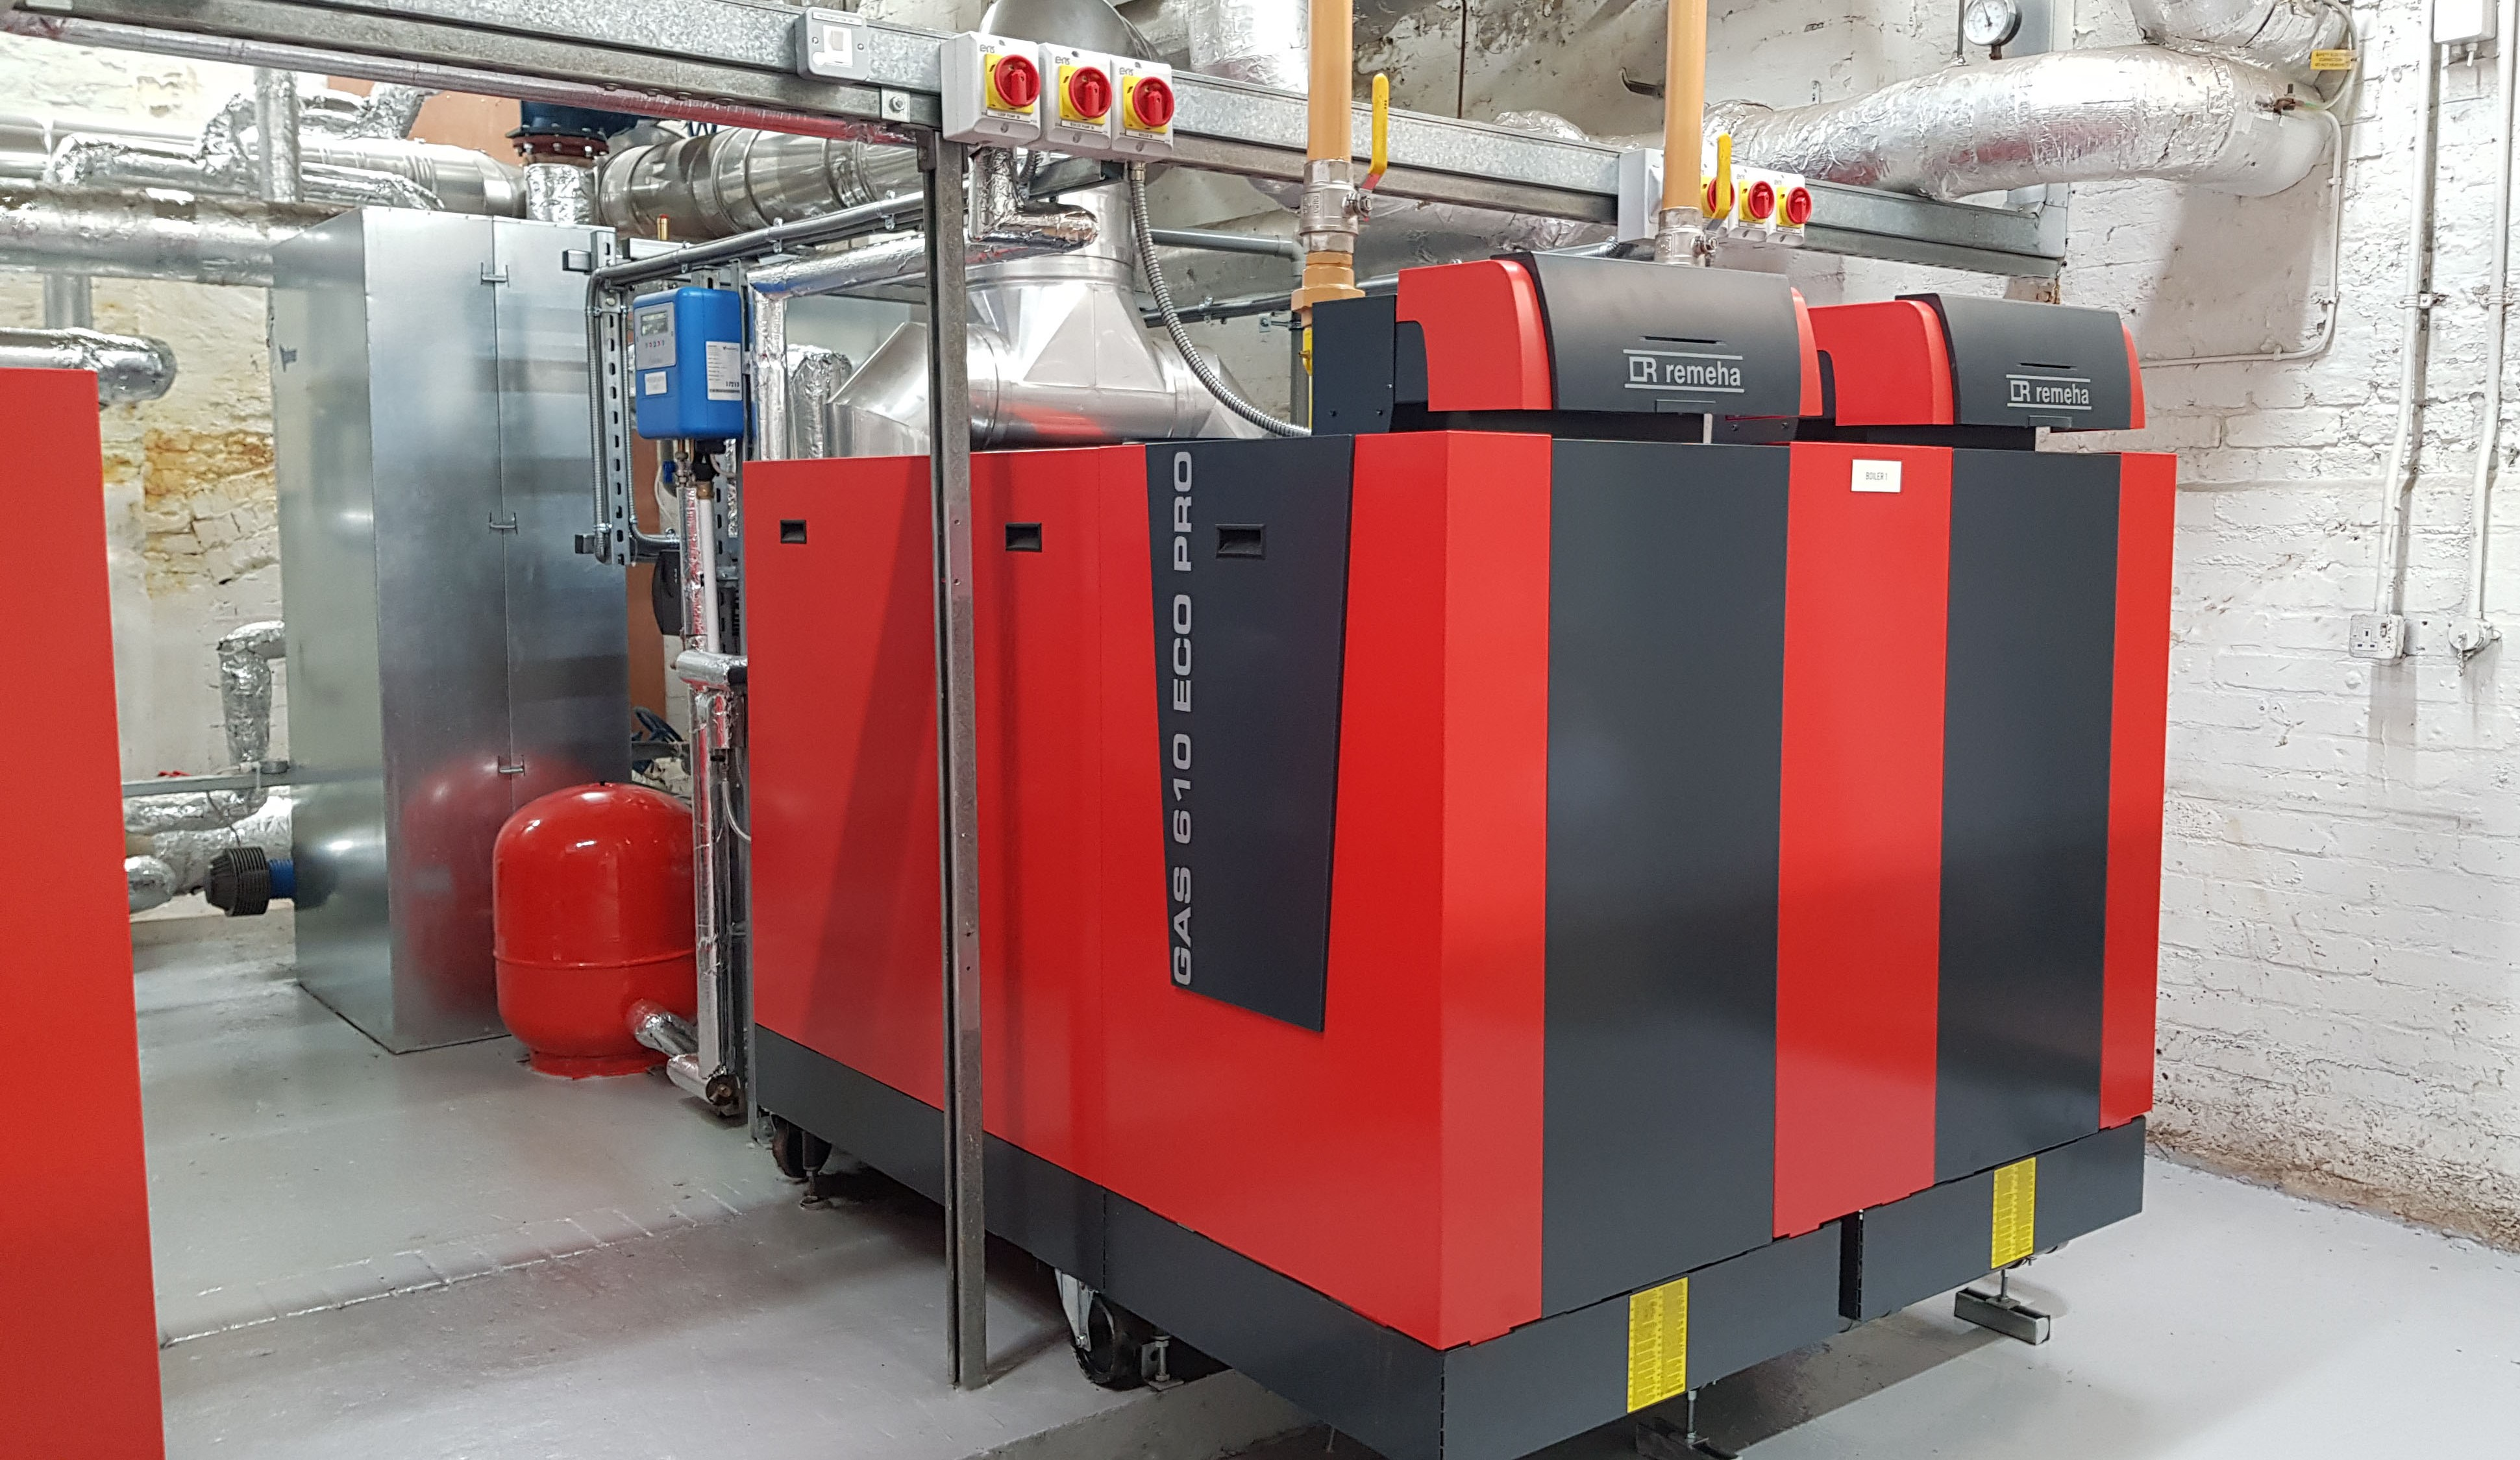 New Boilers with Plate Heat Exchangers at Thomas More School